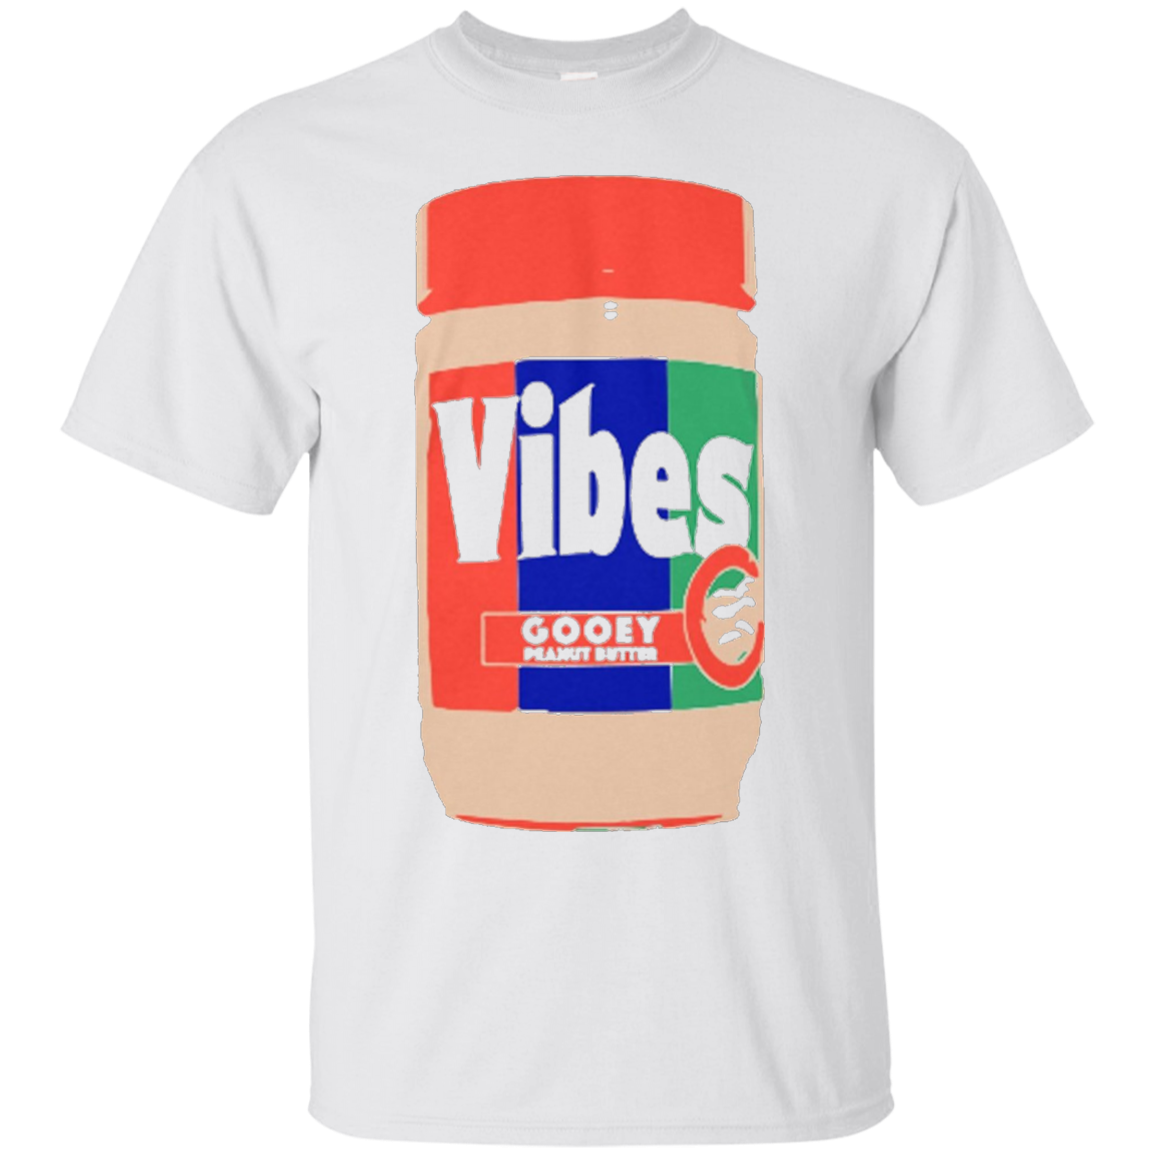 Peanut Butter Vibes - T Shirt for Peanut Butter lovers